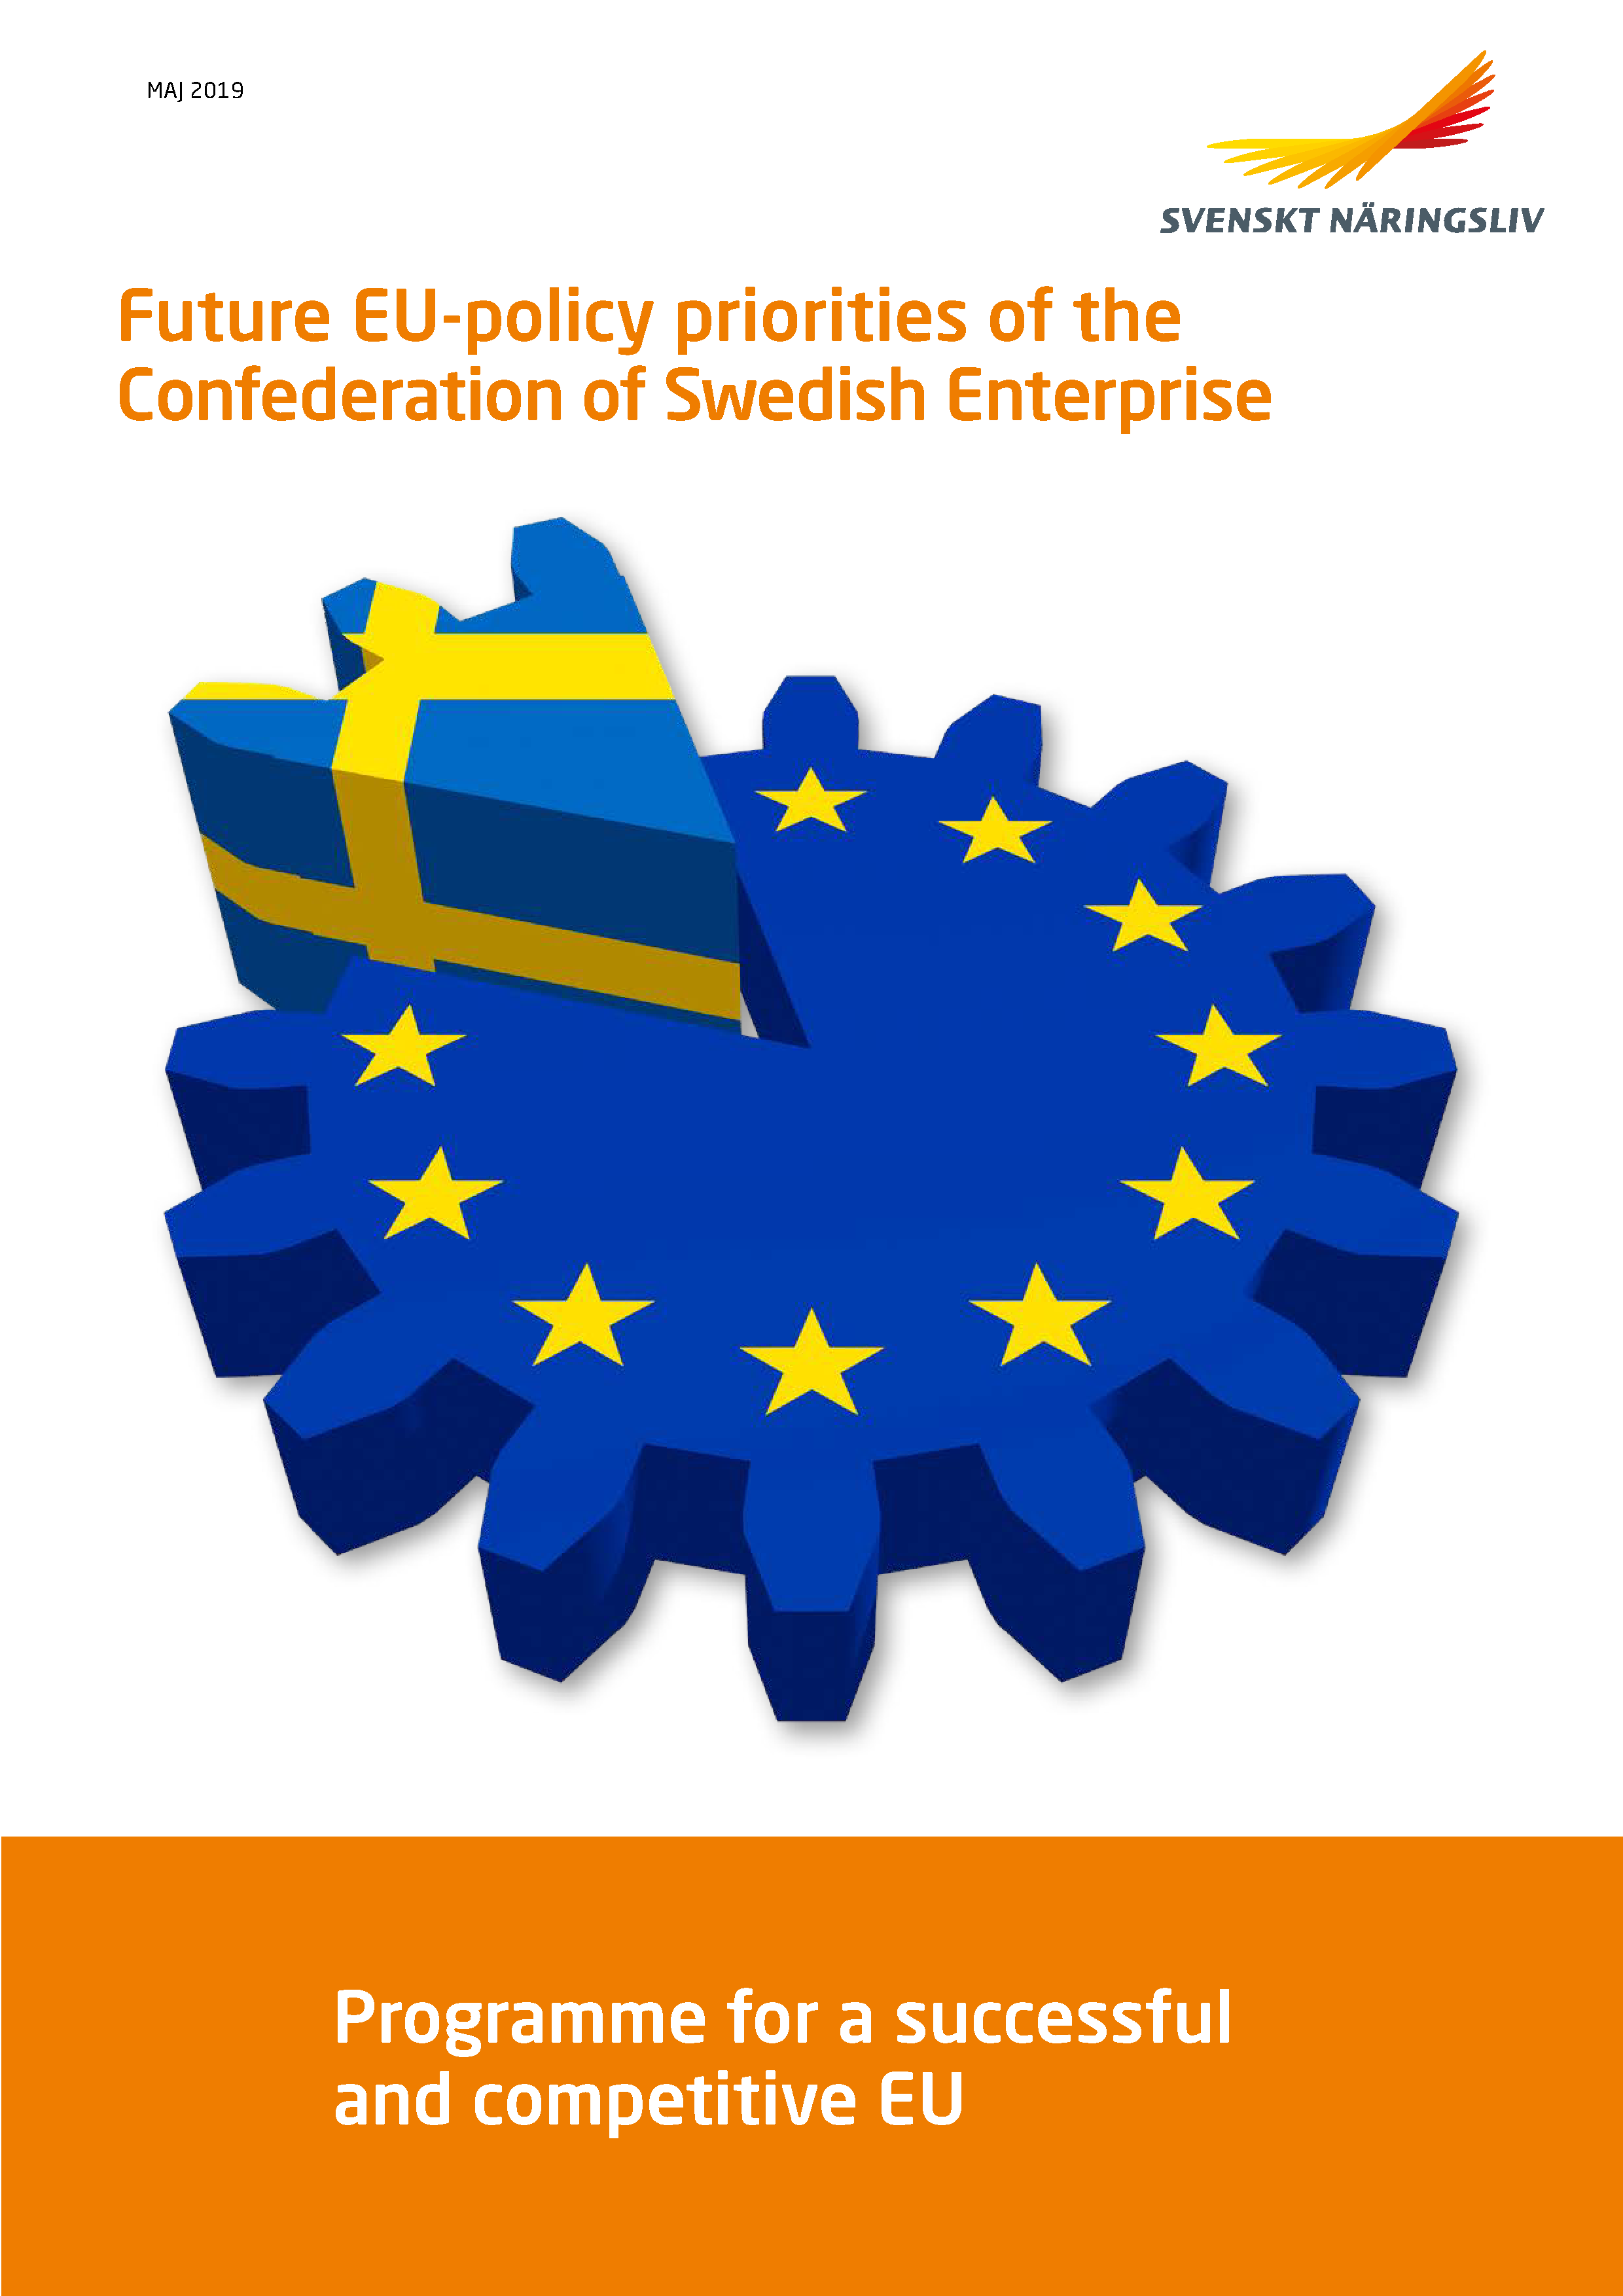 Future EU-policy priorities of the Confederation of Swedish Enterprise